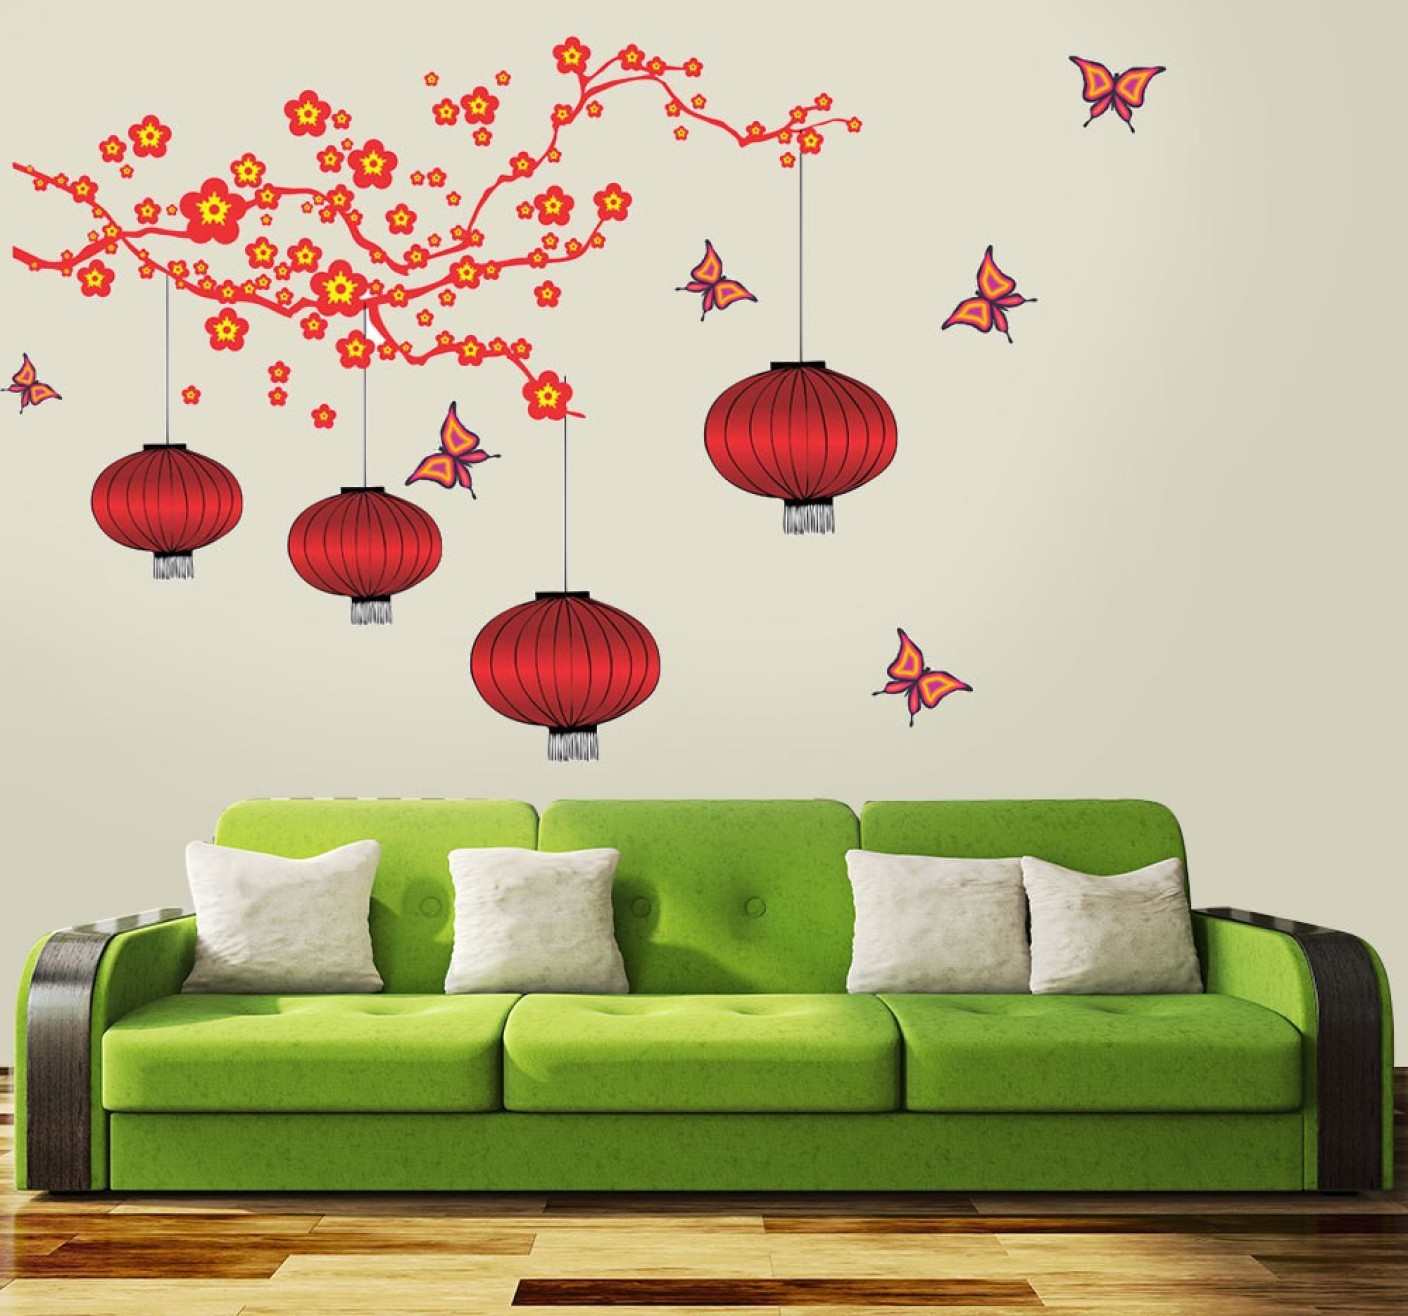 New way decals wall sticker fantasy wallpaper price in for D wall wallpaper